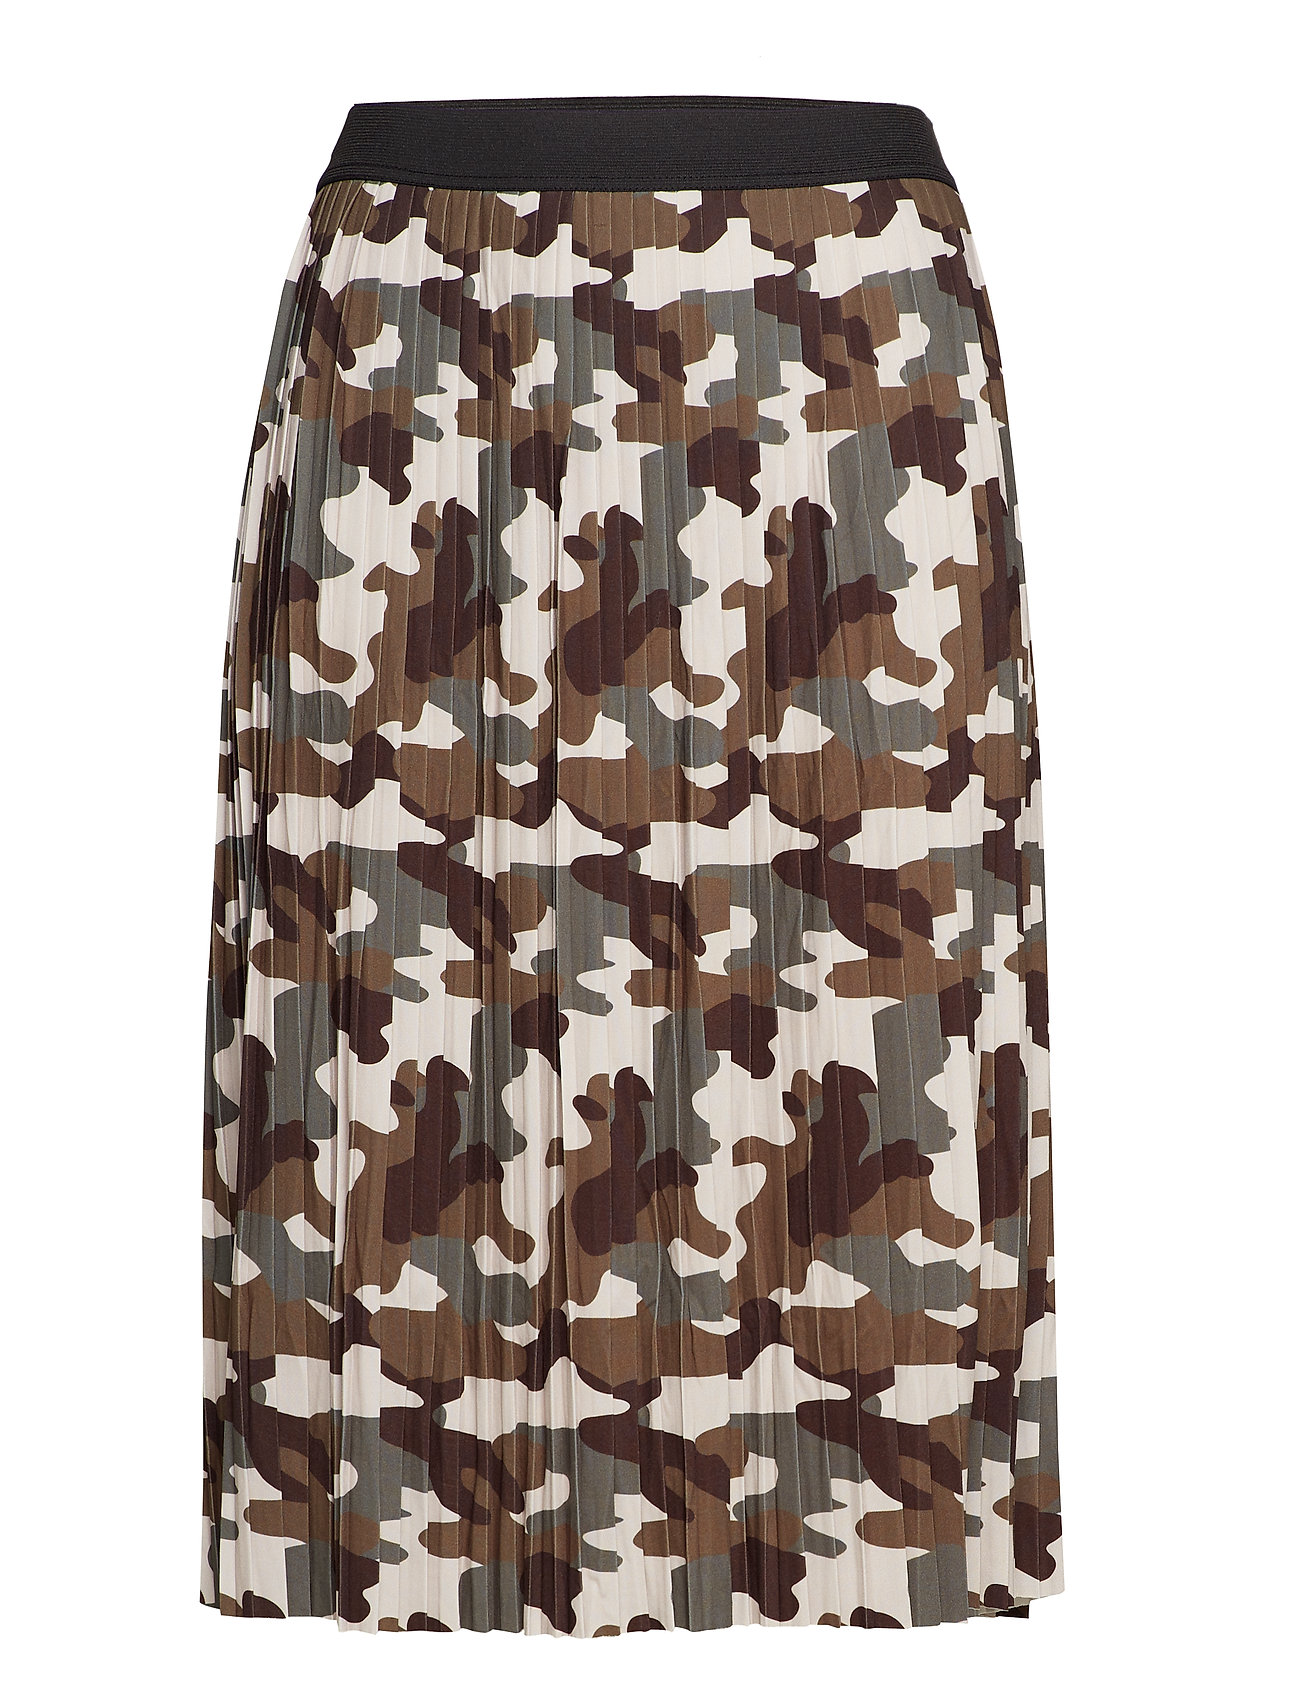 Zizzi MMASS, 3/4, SKIRT - GREEN